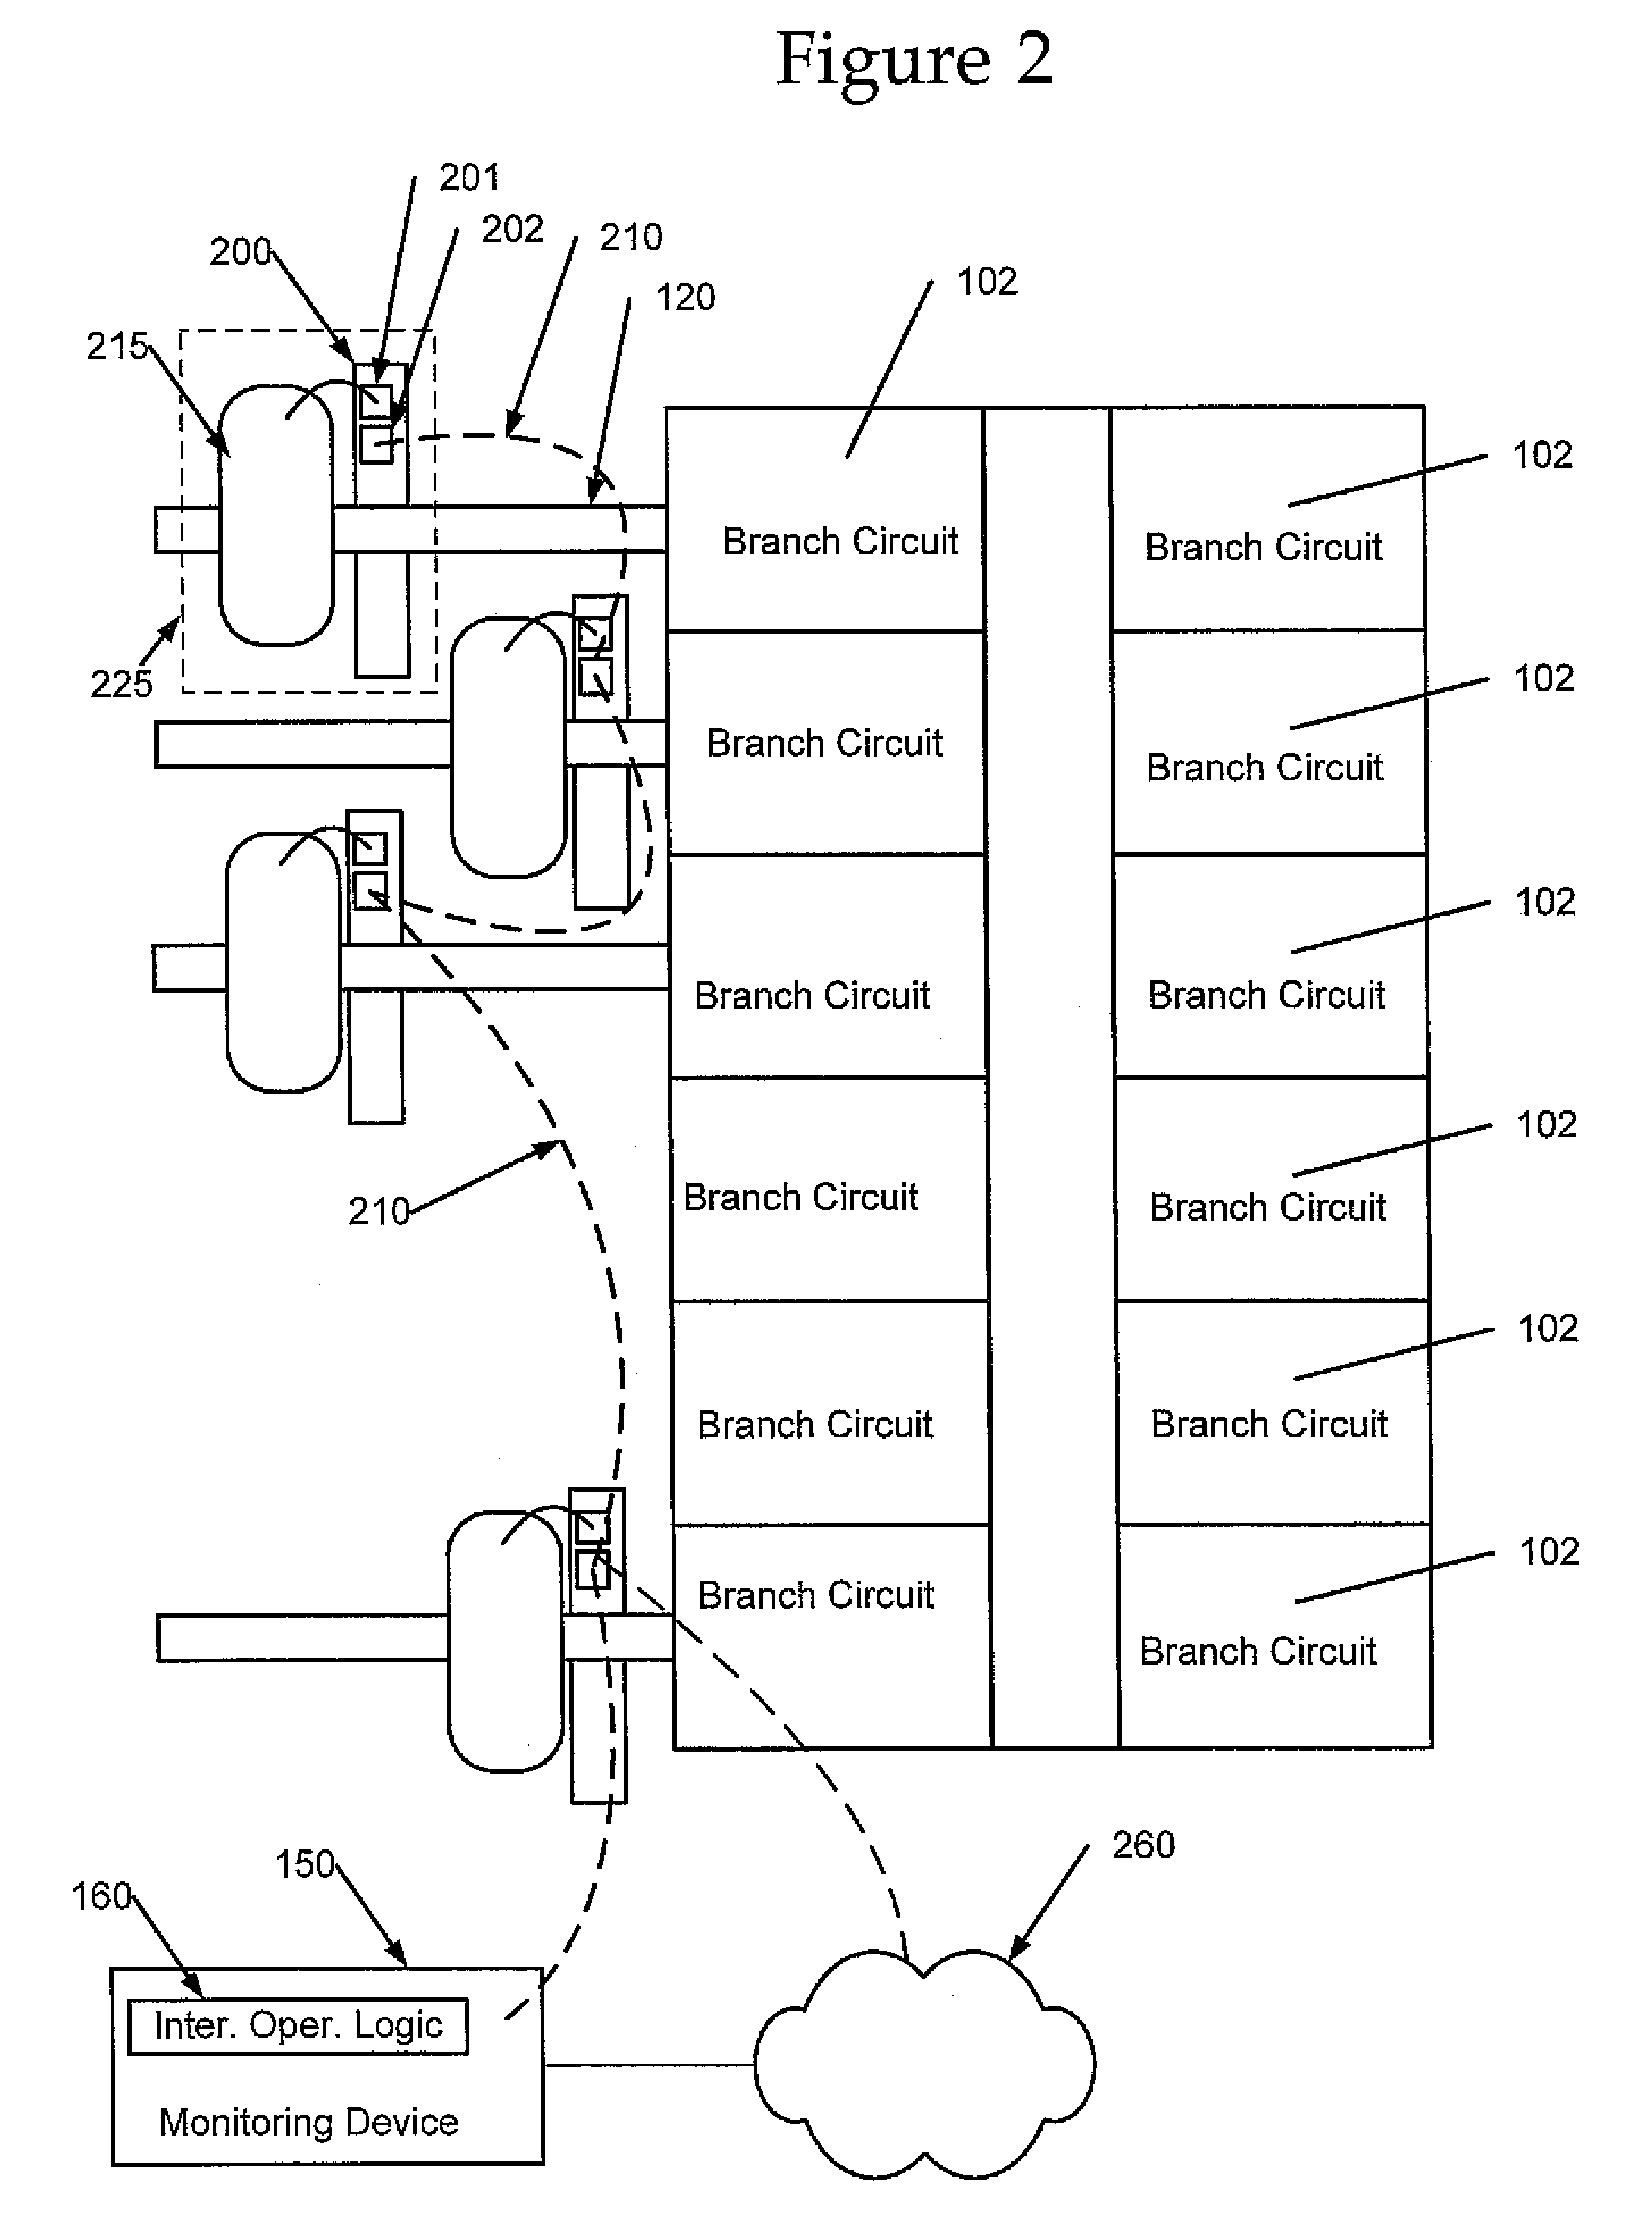 patent us7453267 - branch circuit monitor system